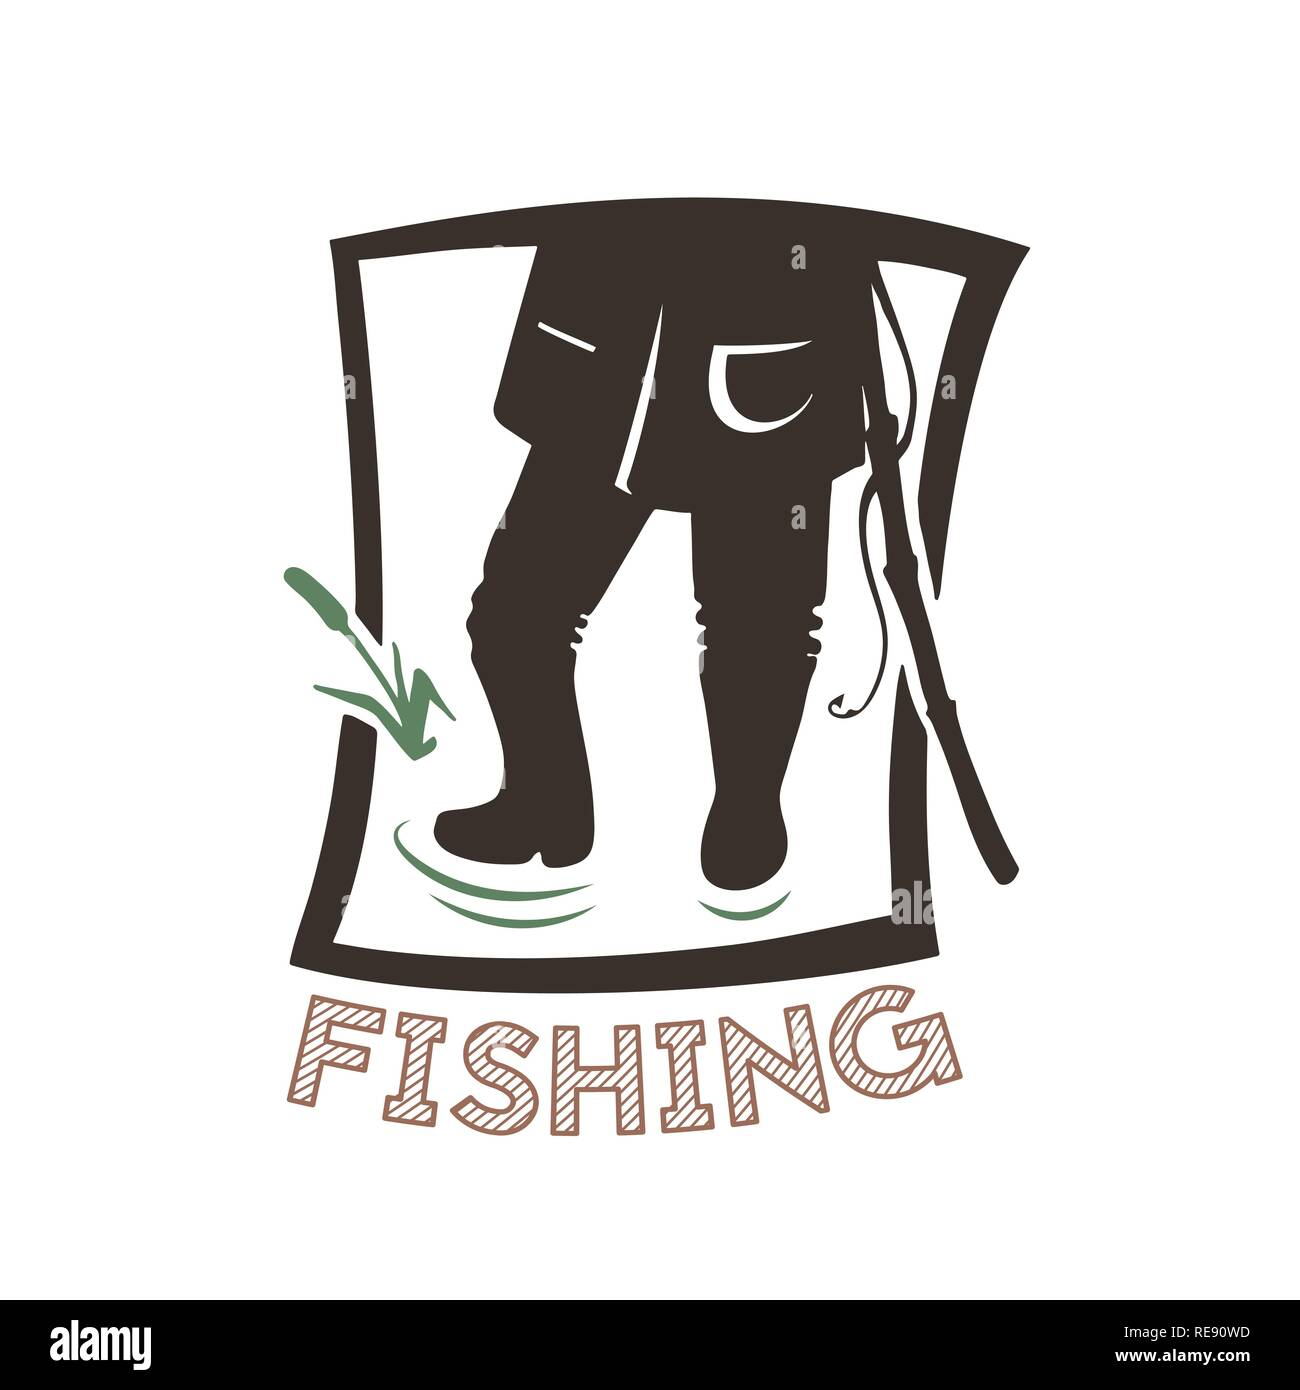 Silhouette of angle. Vector illustration icon. Logo of the fishing shop. - Stock Image